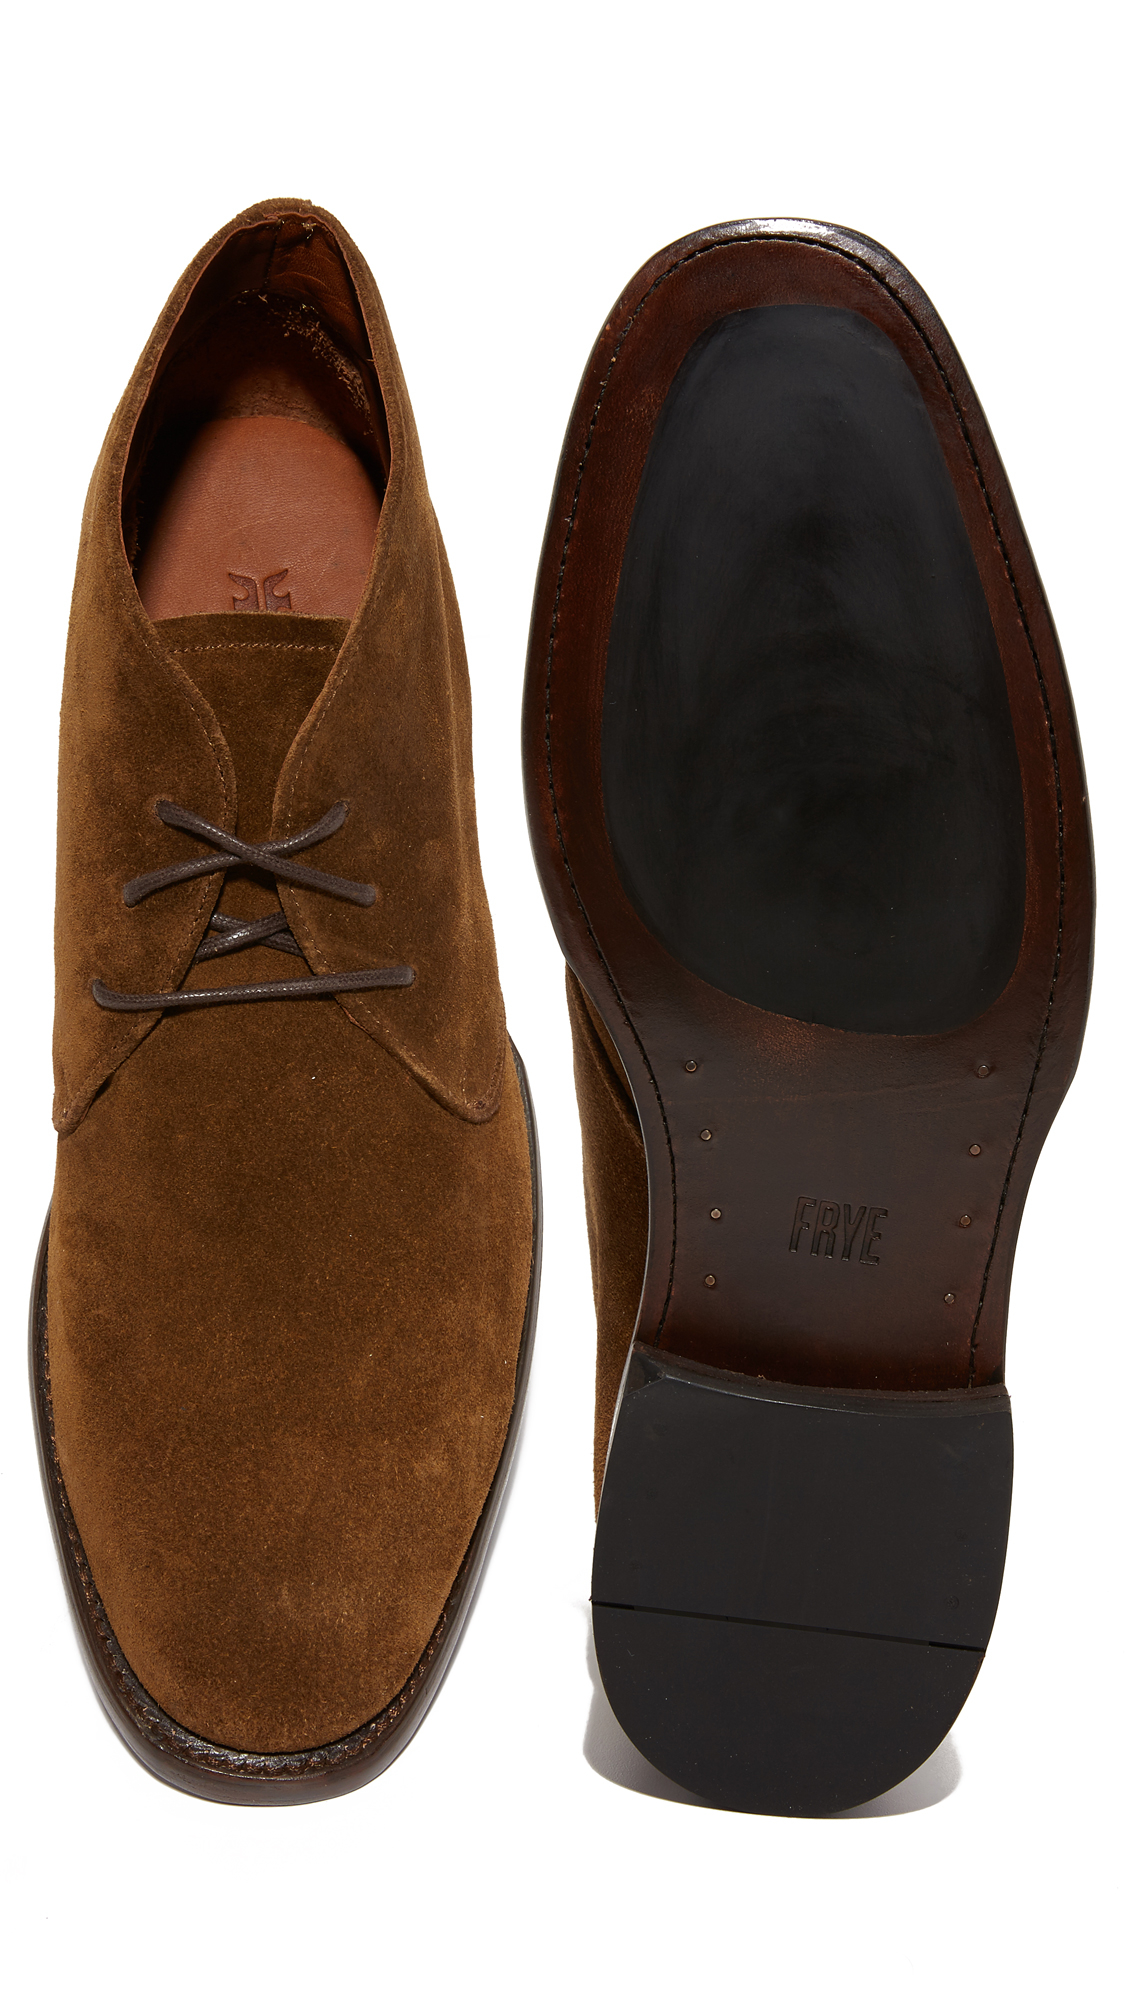 frye weston suede chukka boots in blue for lyst